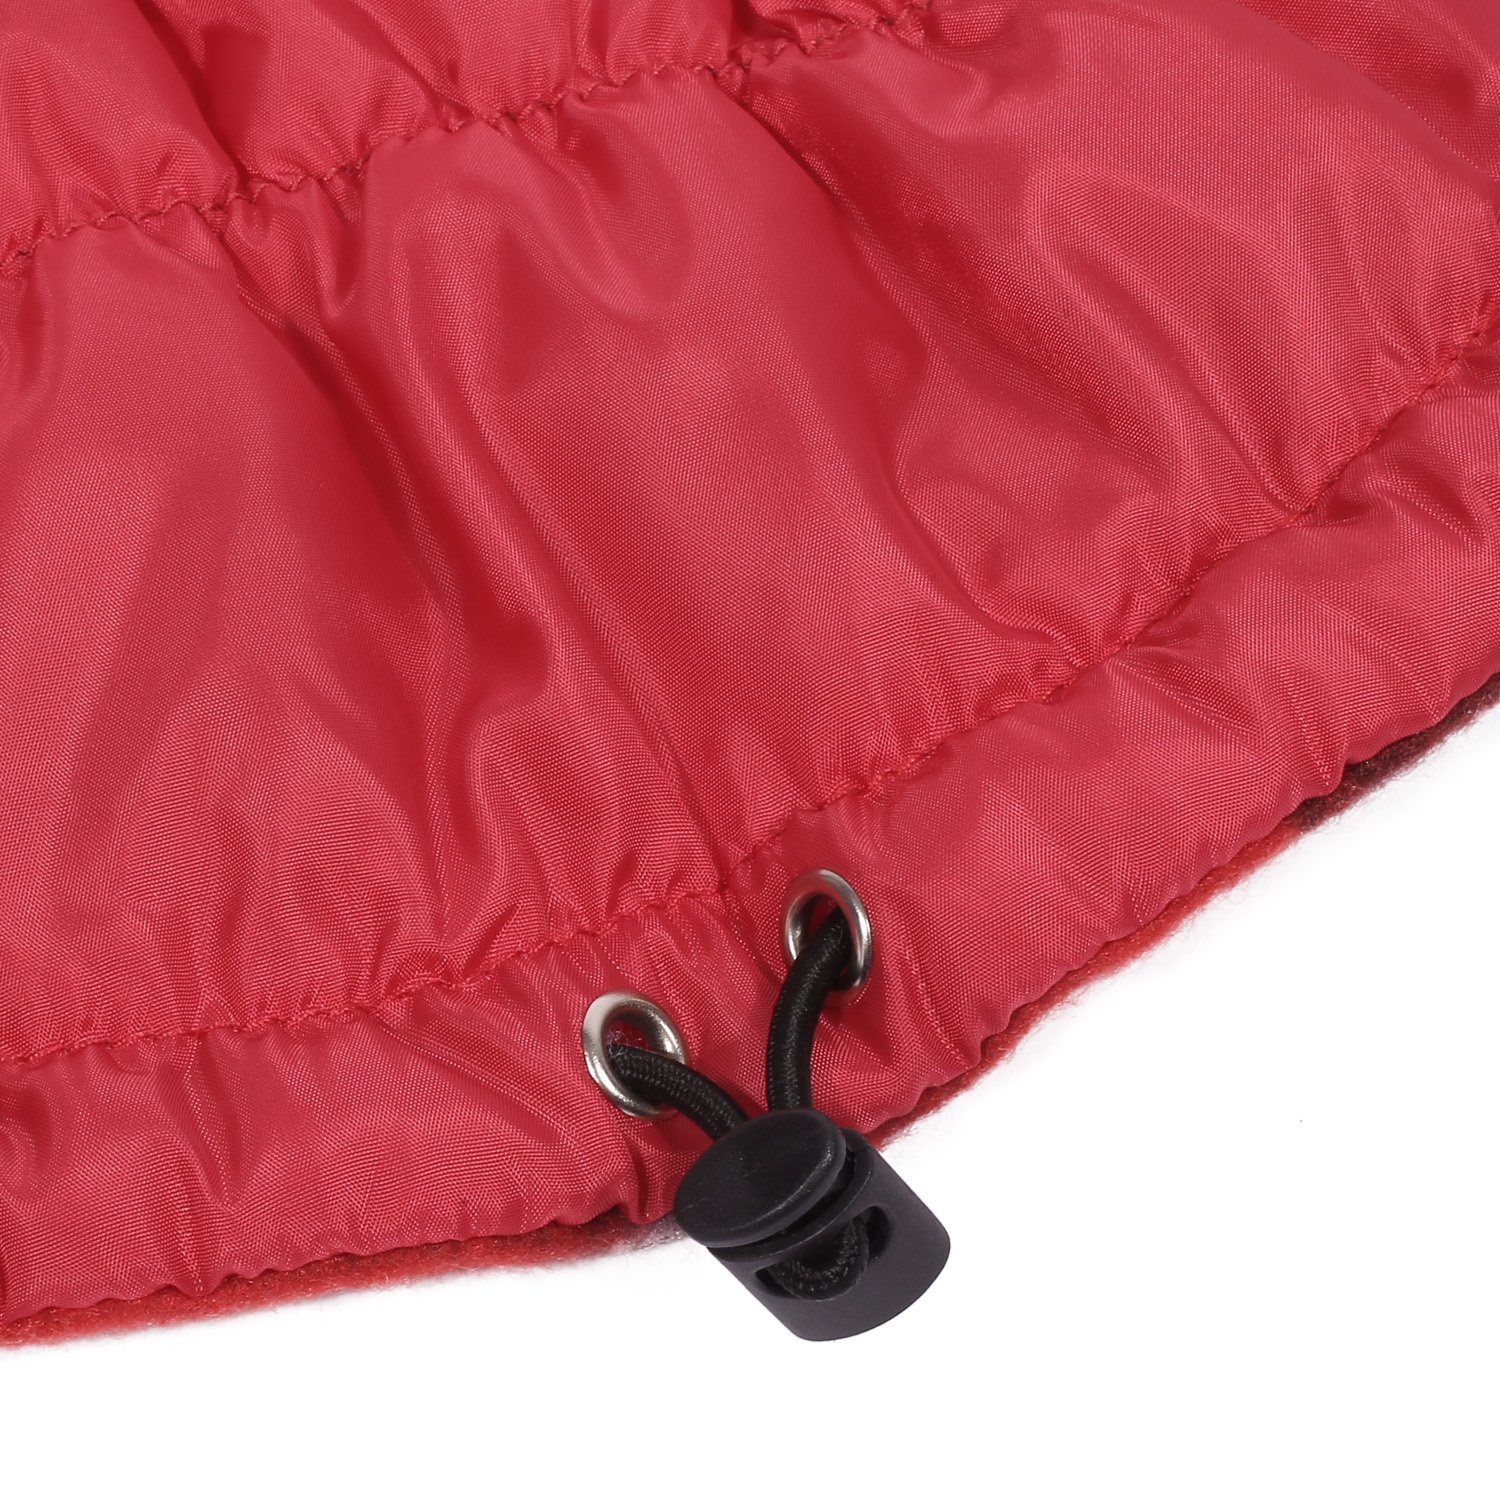 Pecute Dog Jacket Outdoor Winter Warm Pet Apparel with Strap Closure for Small Medium Dog Red Large